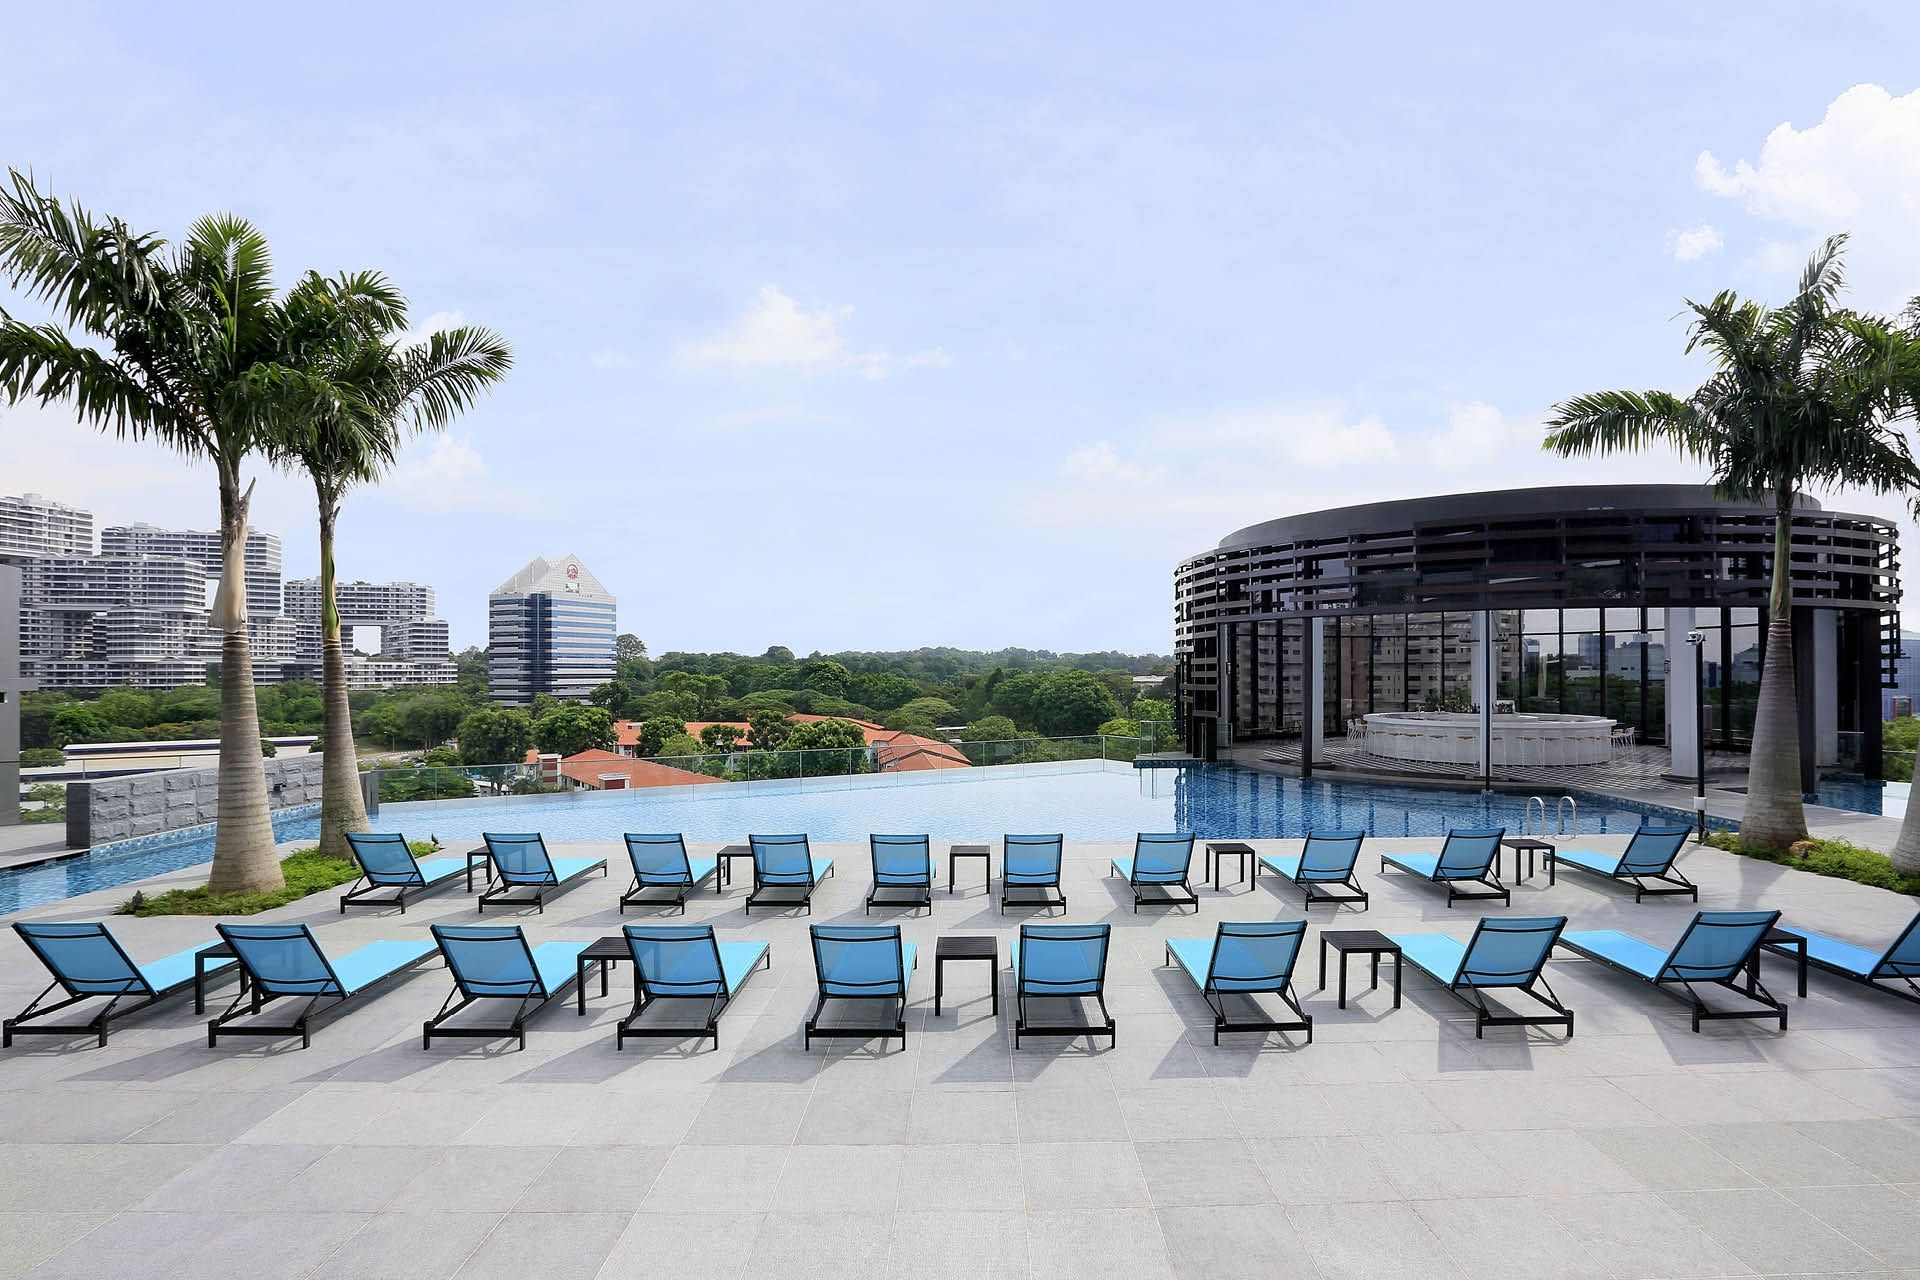 Spacious pool deck with sprawling views of natural greenery - Park Hotel Alexandra